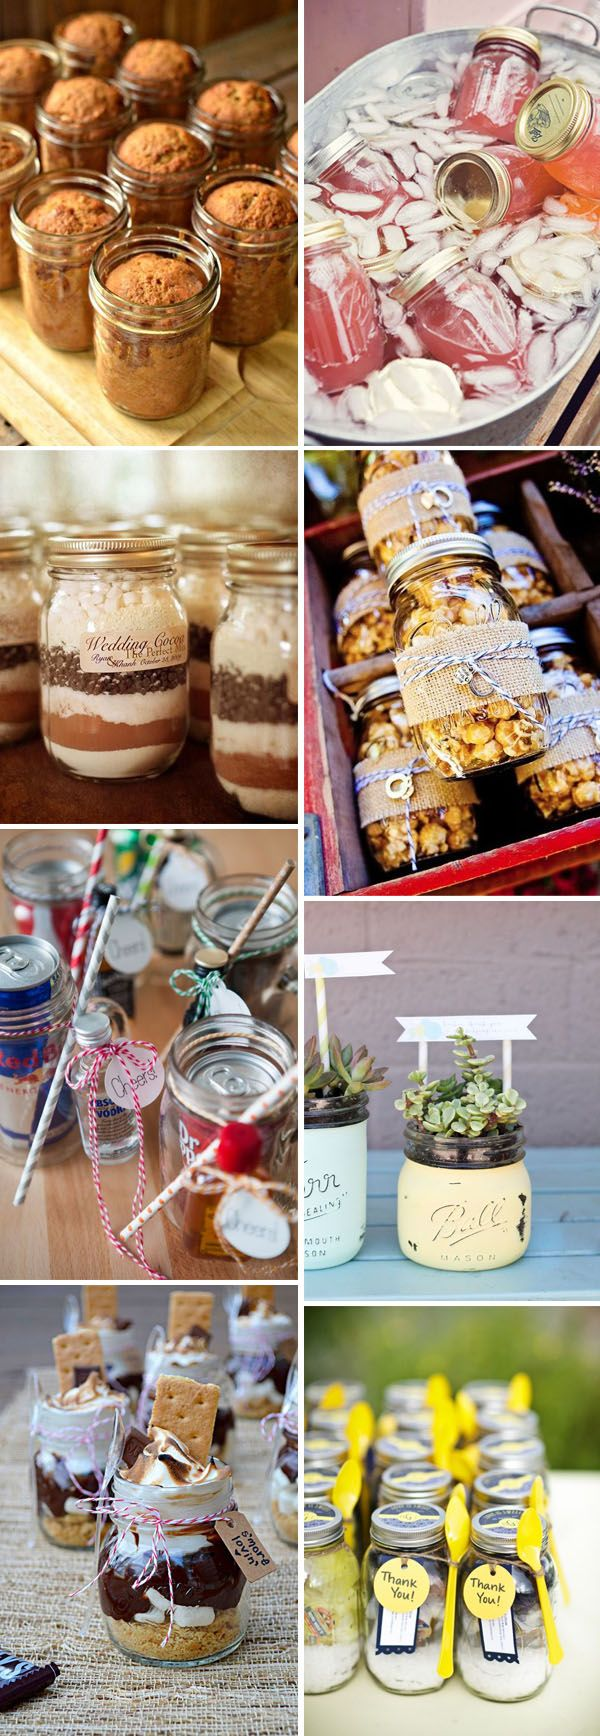 83 best rustic wedding ideas images on pinterest marriage